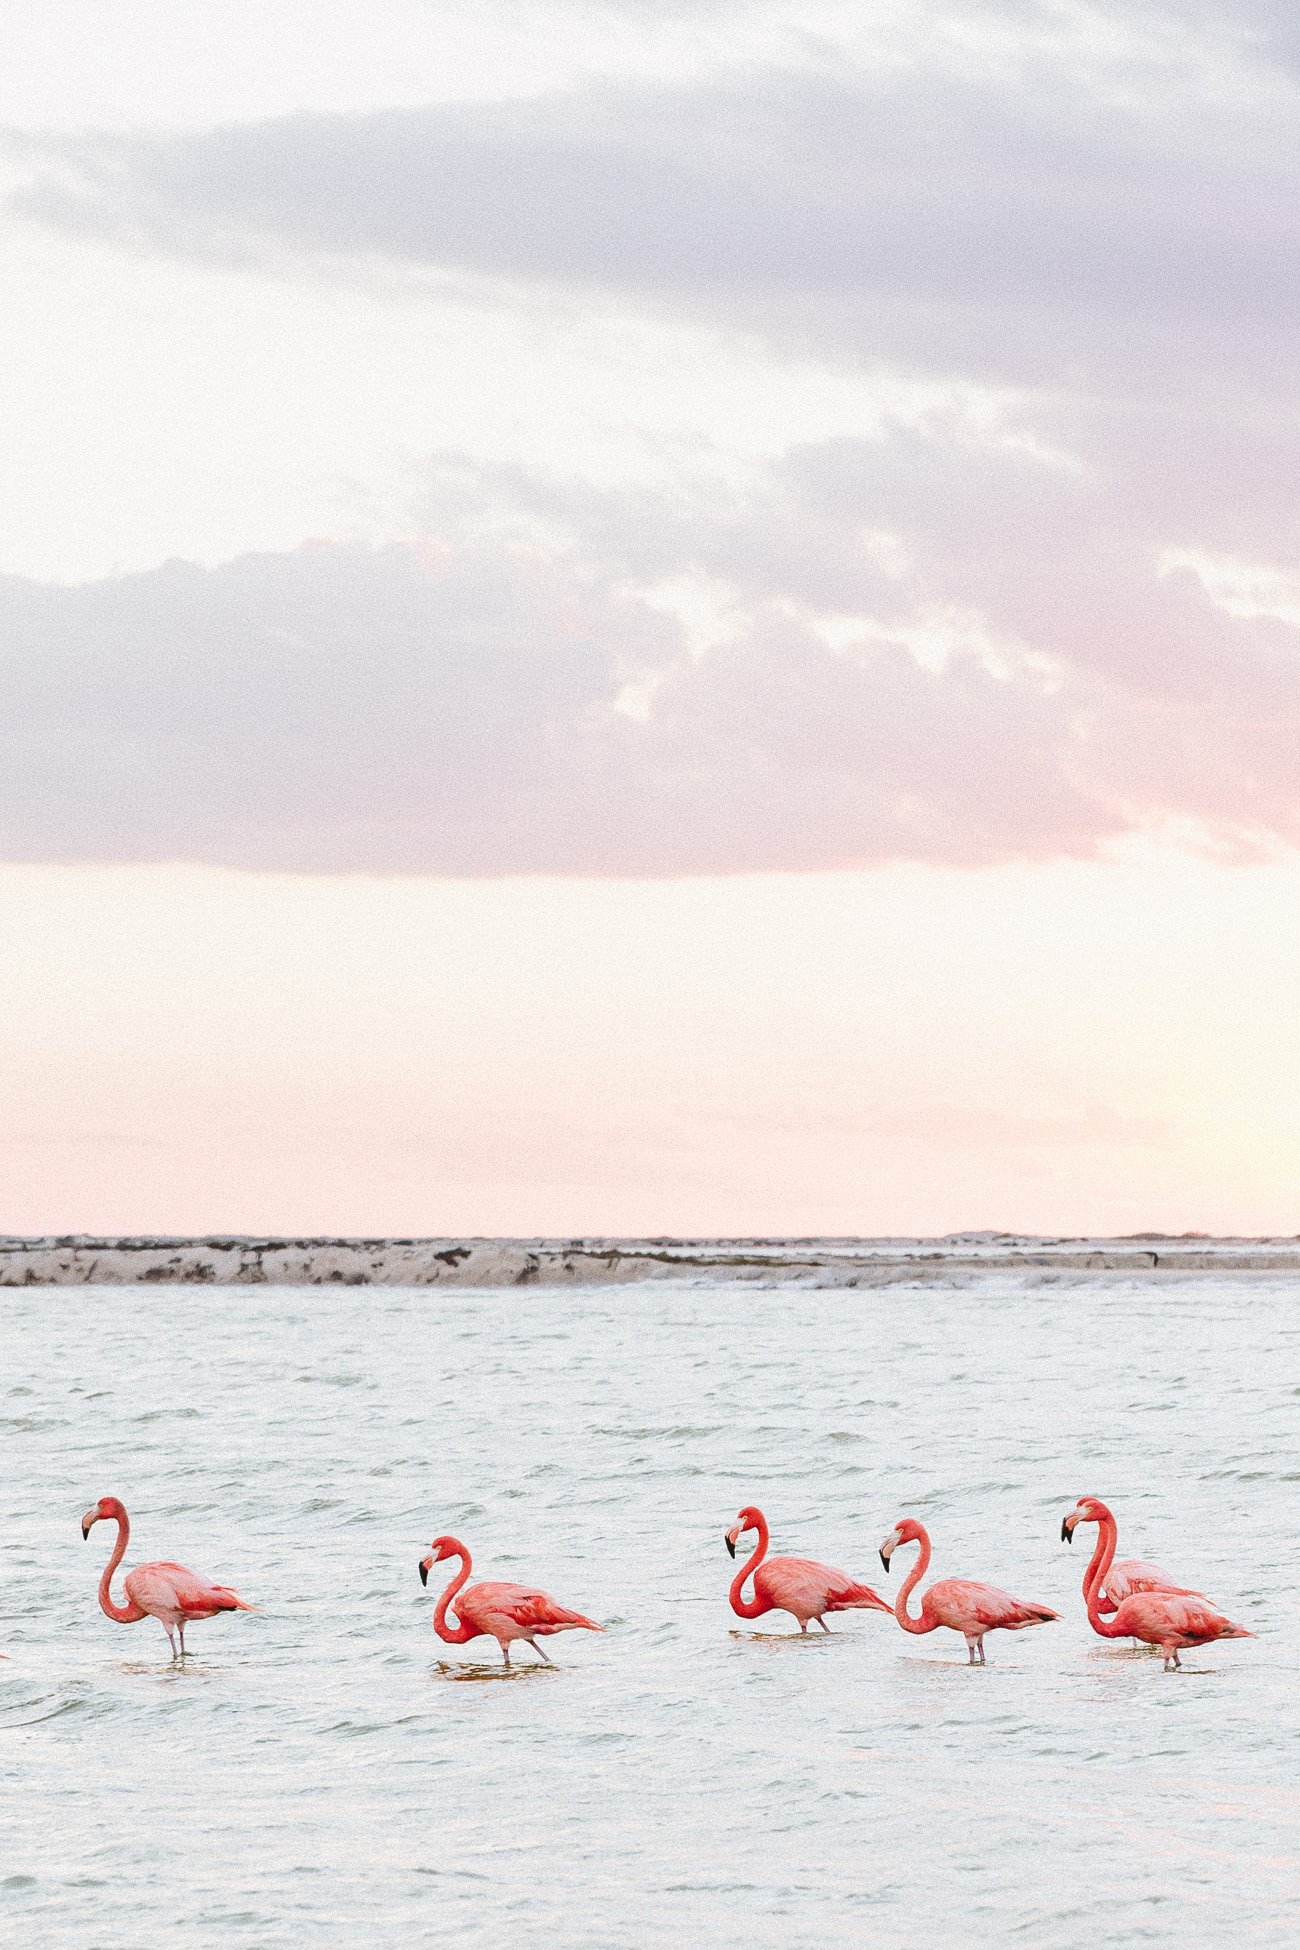 Flamingos at Las Coloradas, Yucatan, Mexico